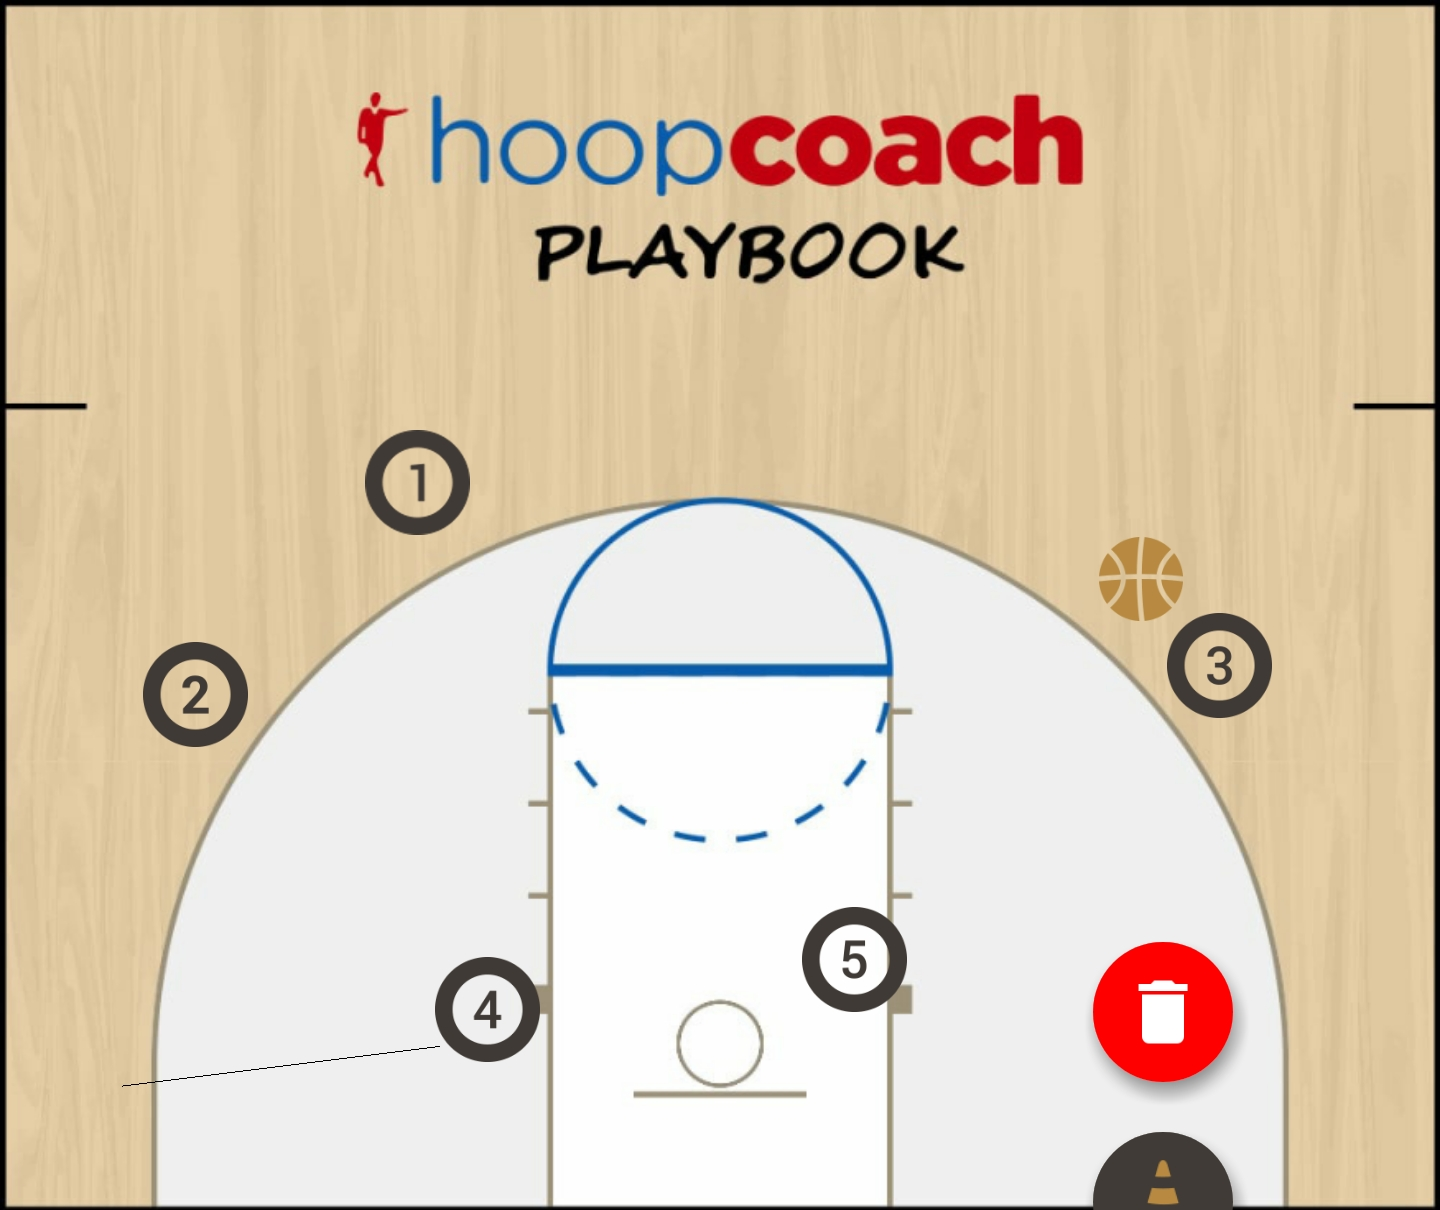 Basketball Play Motion Man to Man Offense offense set to get the ball moving against man